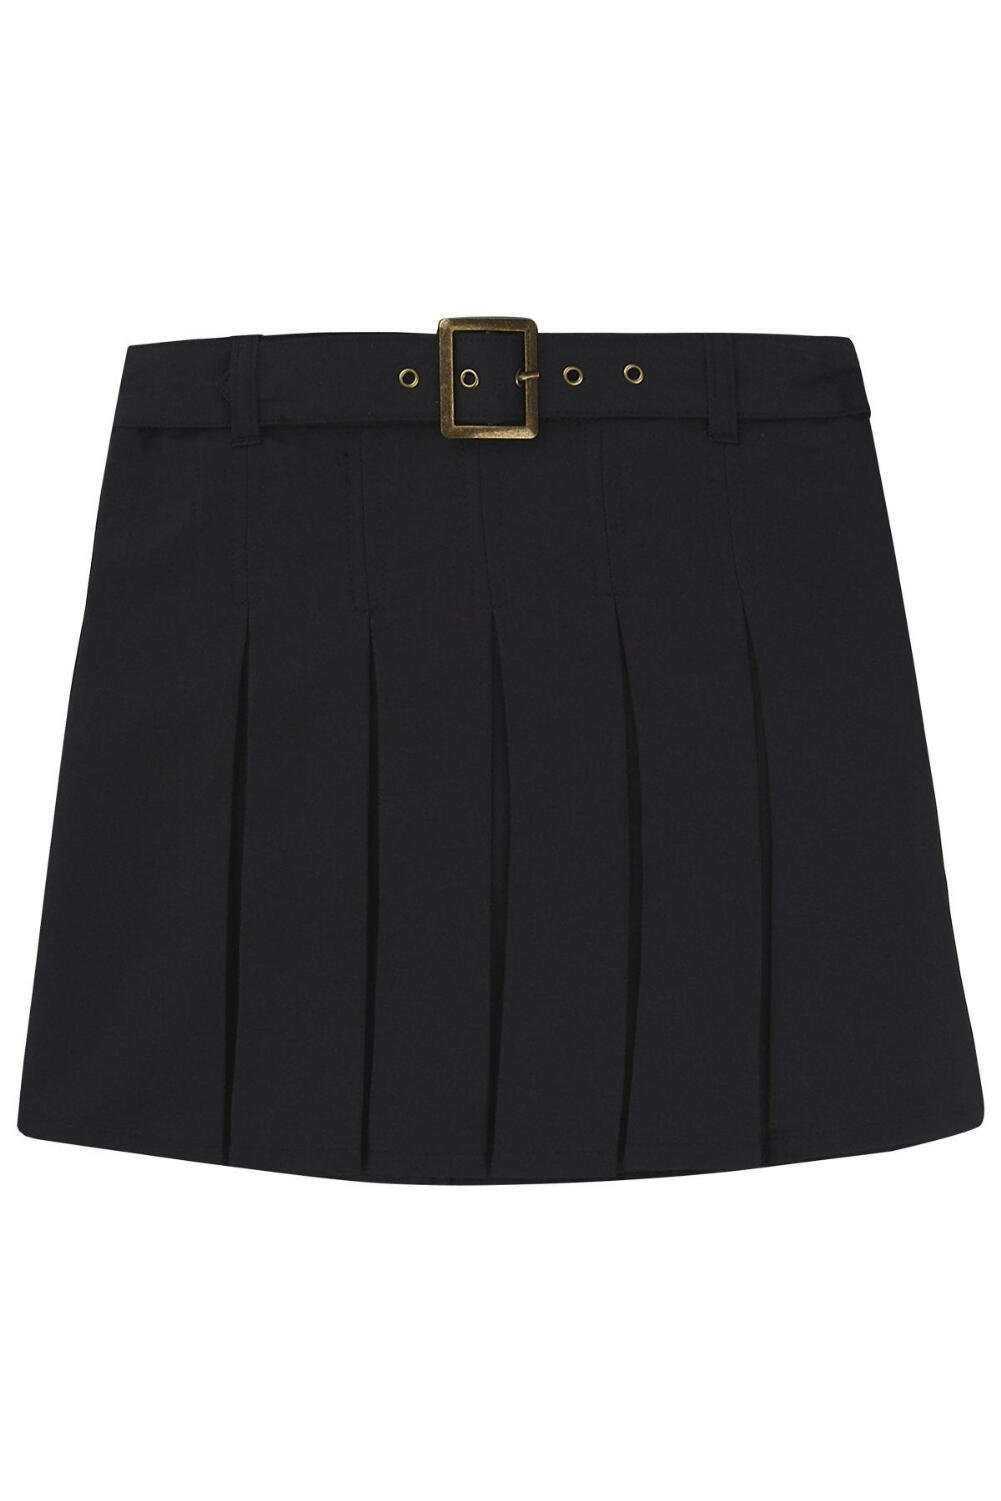 French Toast Girls' Big Belted Pleat Scooter, Black, 16